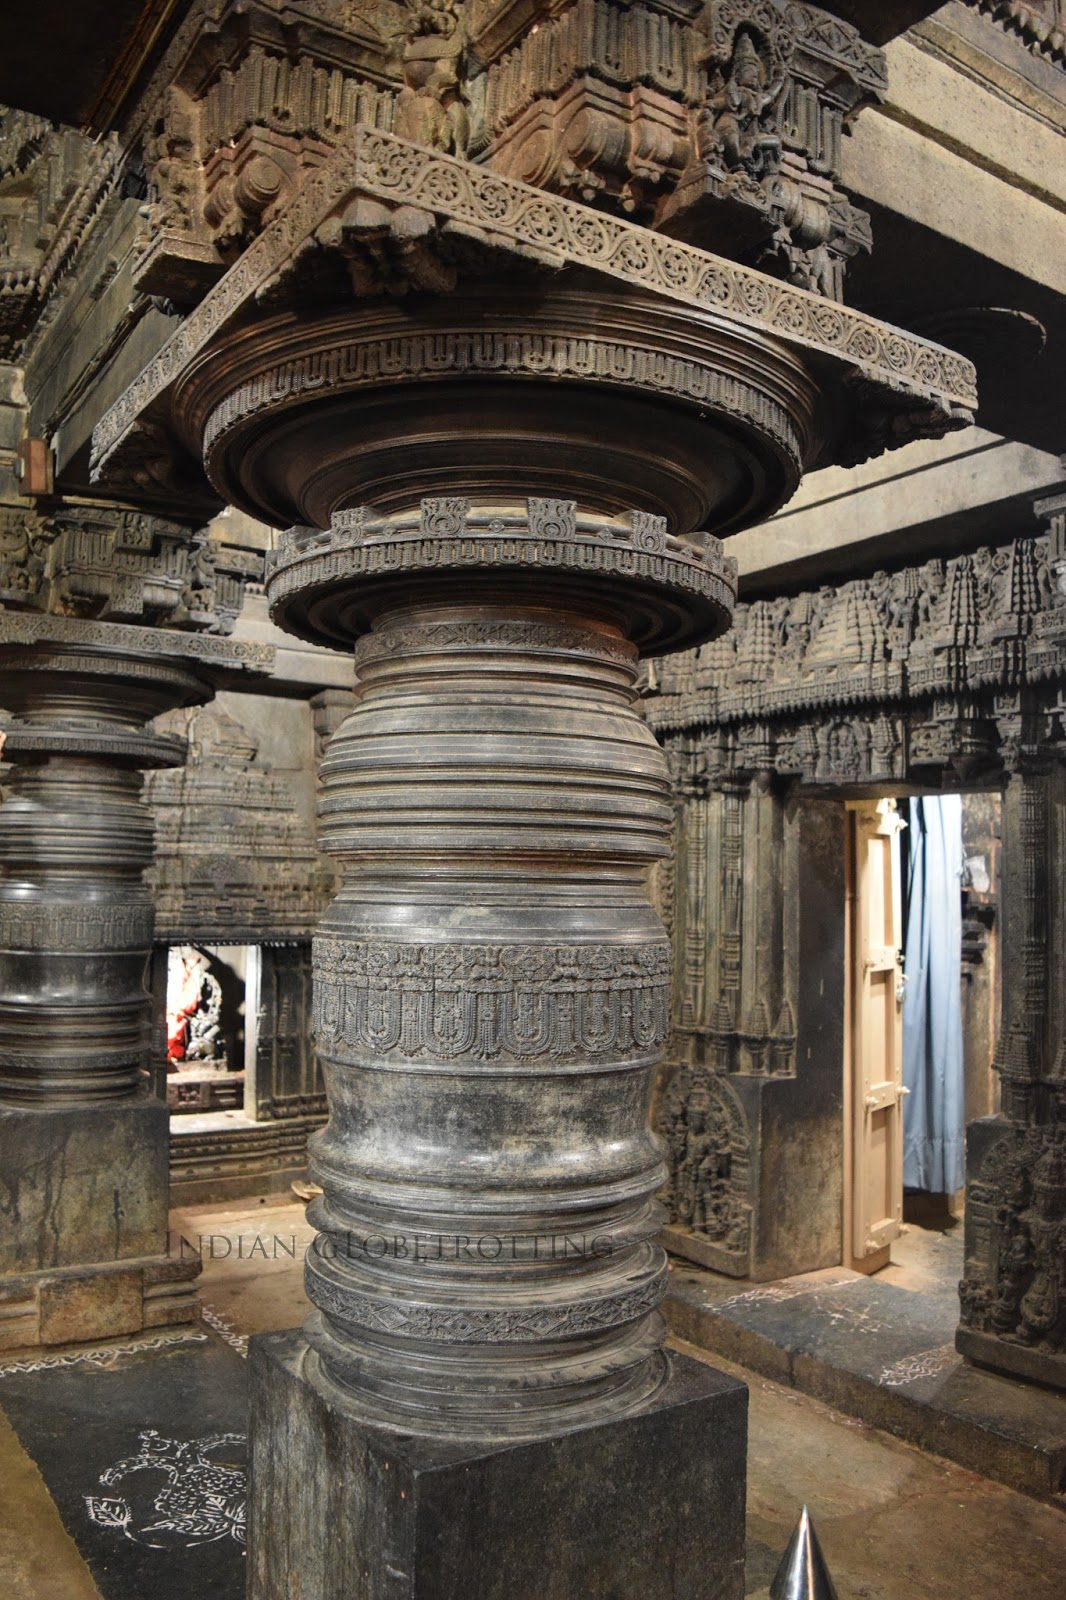 lathe tuned pillar in lakshminarayana temple hosaholalu. a unique feature of hoysala architecture